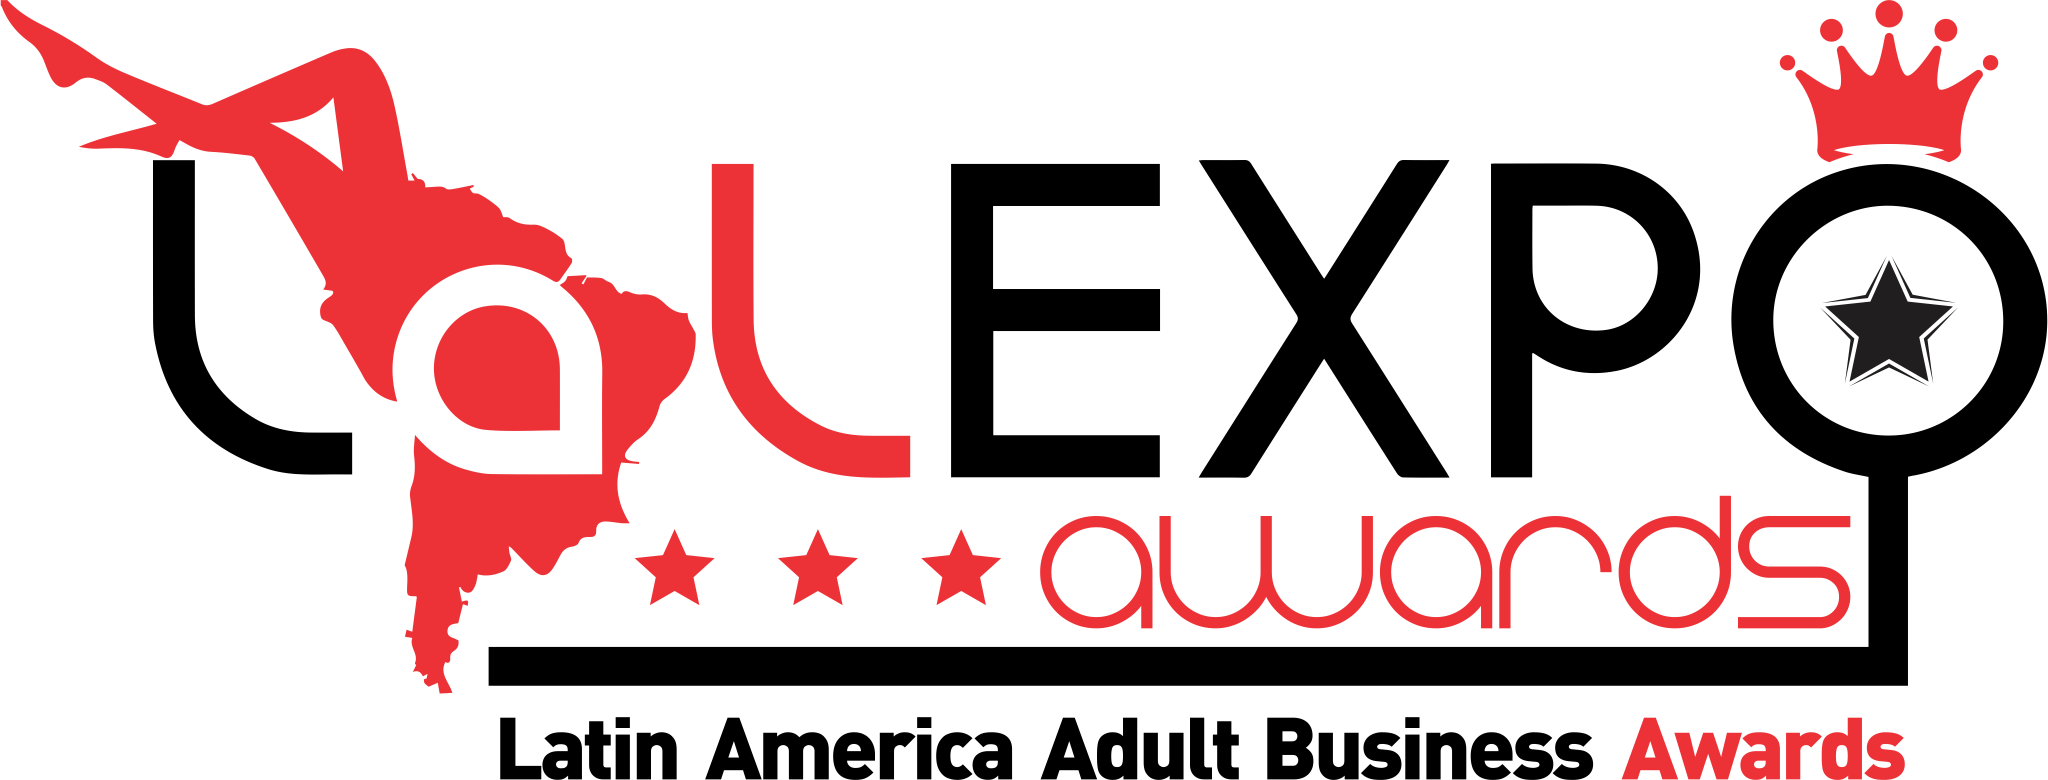 Lalexpo: Latin America Adult Business Awards